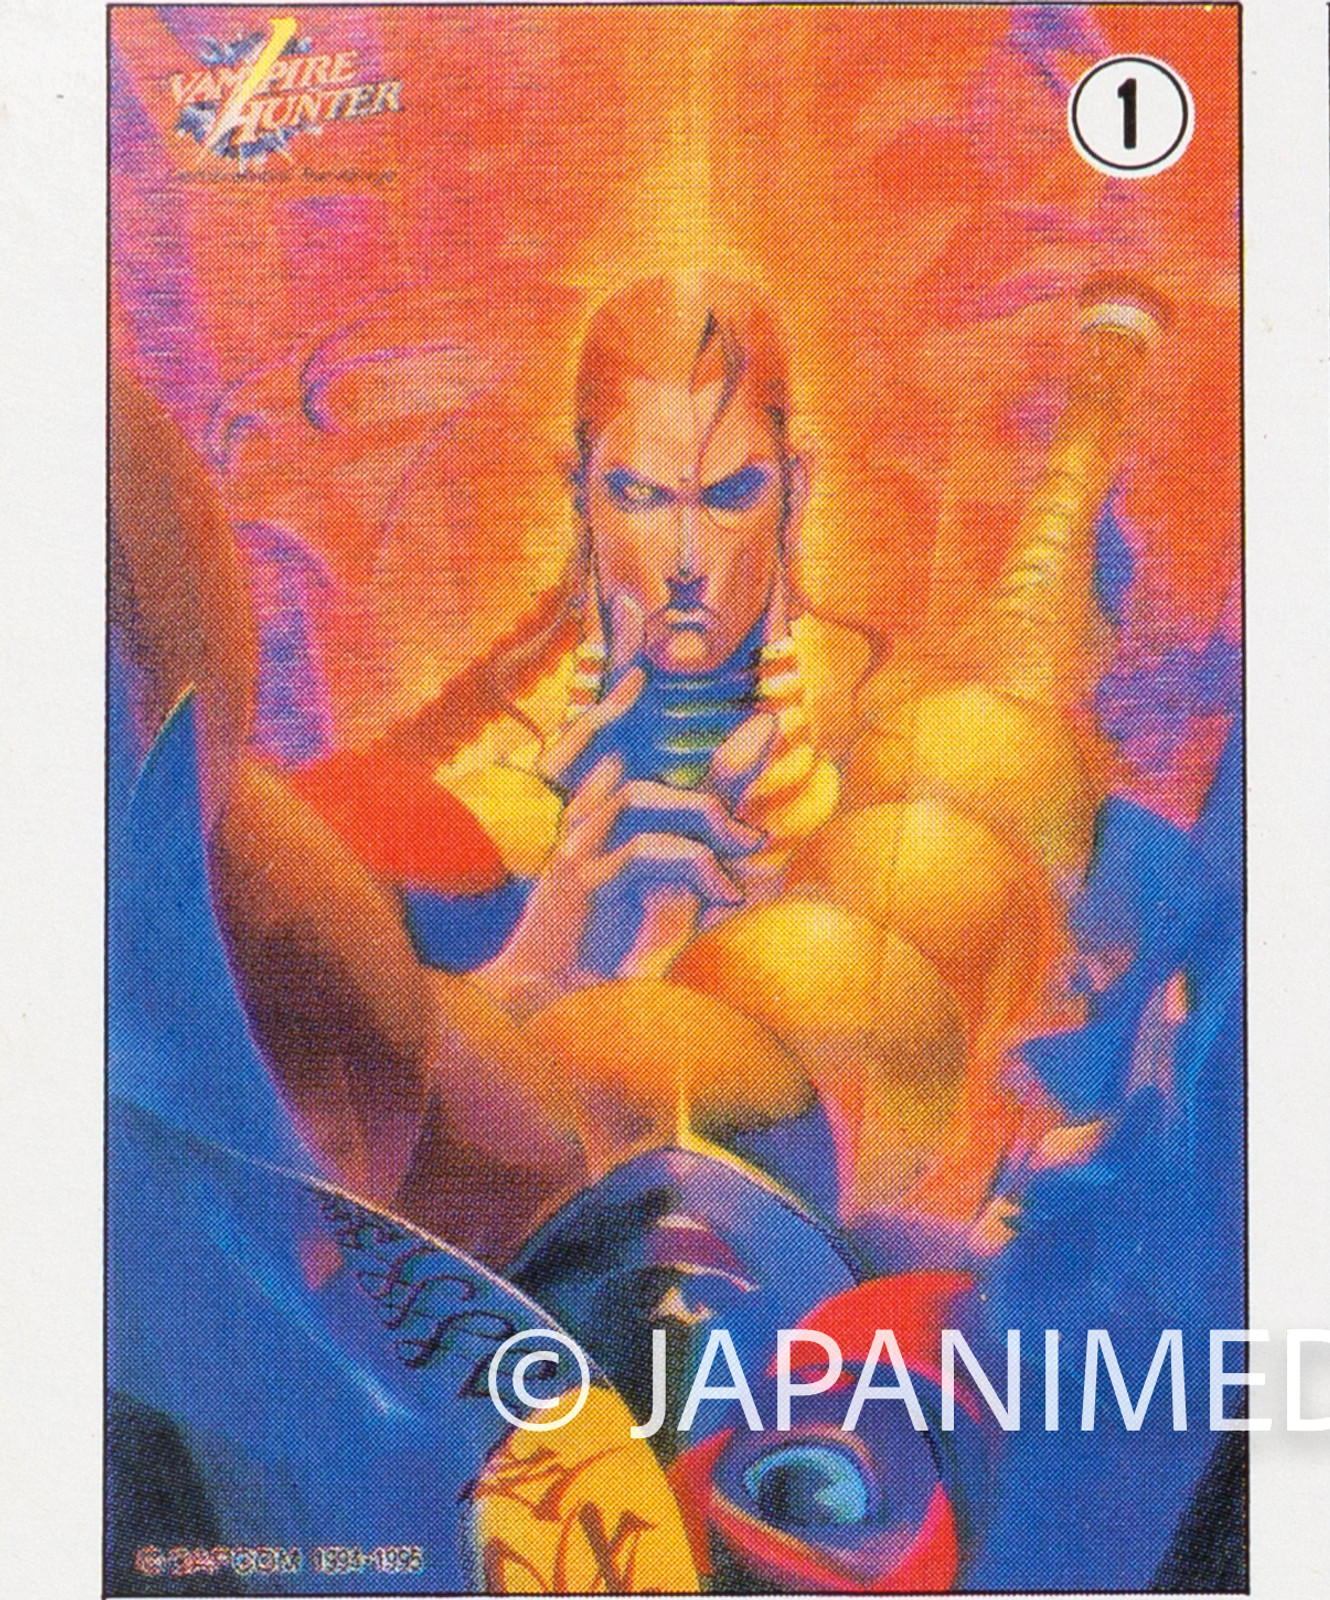 Darkstalkers (Vampire Hunter) Toy Jigsaw Puzzle 54 Pieces #1 JAPAN Capcom